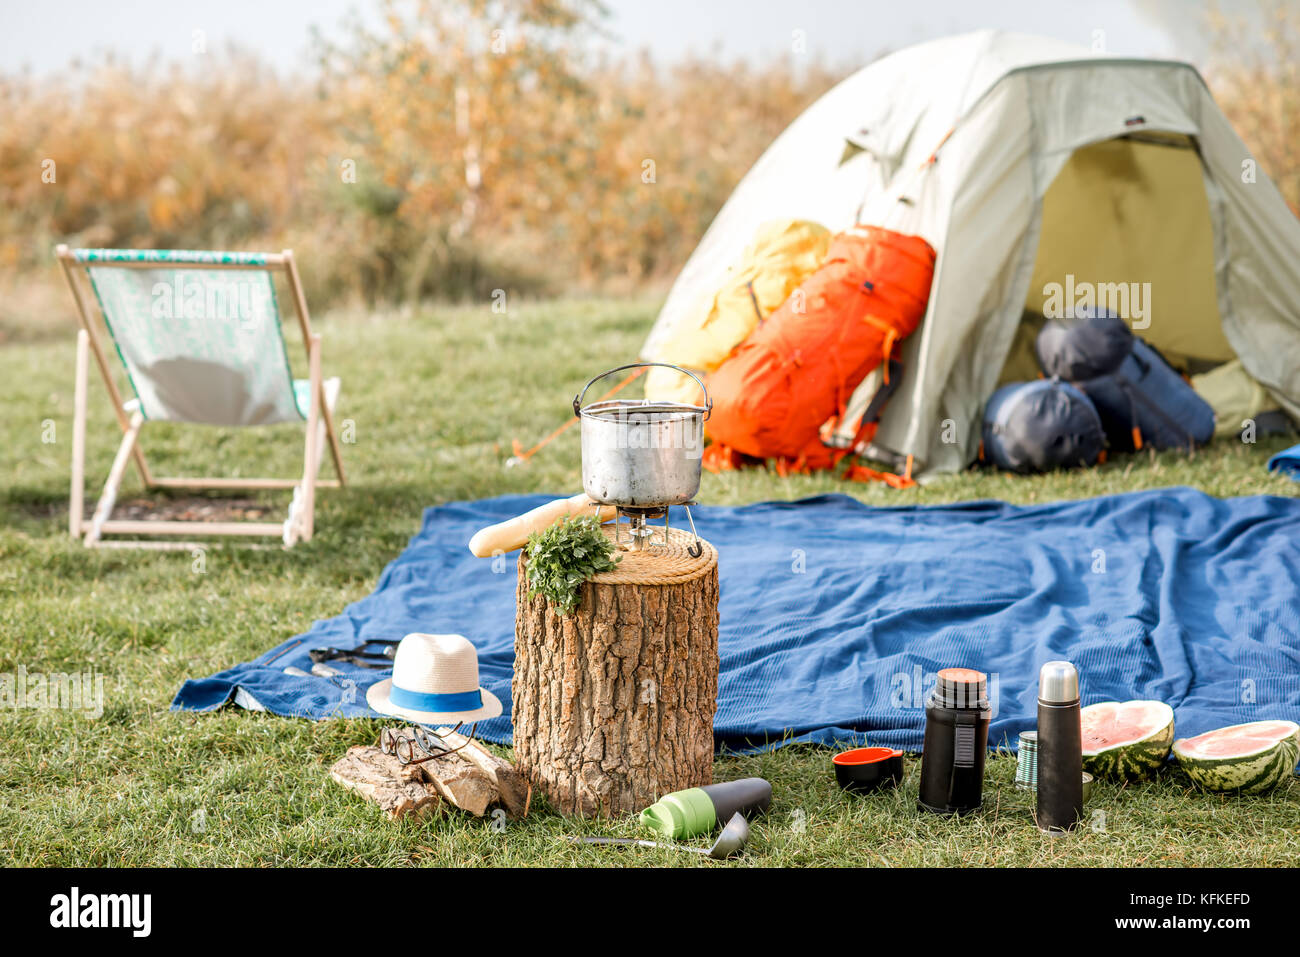 Camping place with tent and equipment outdoors - Stock Image